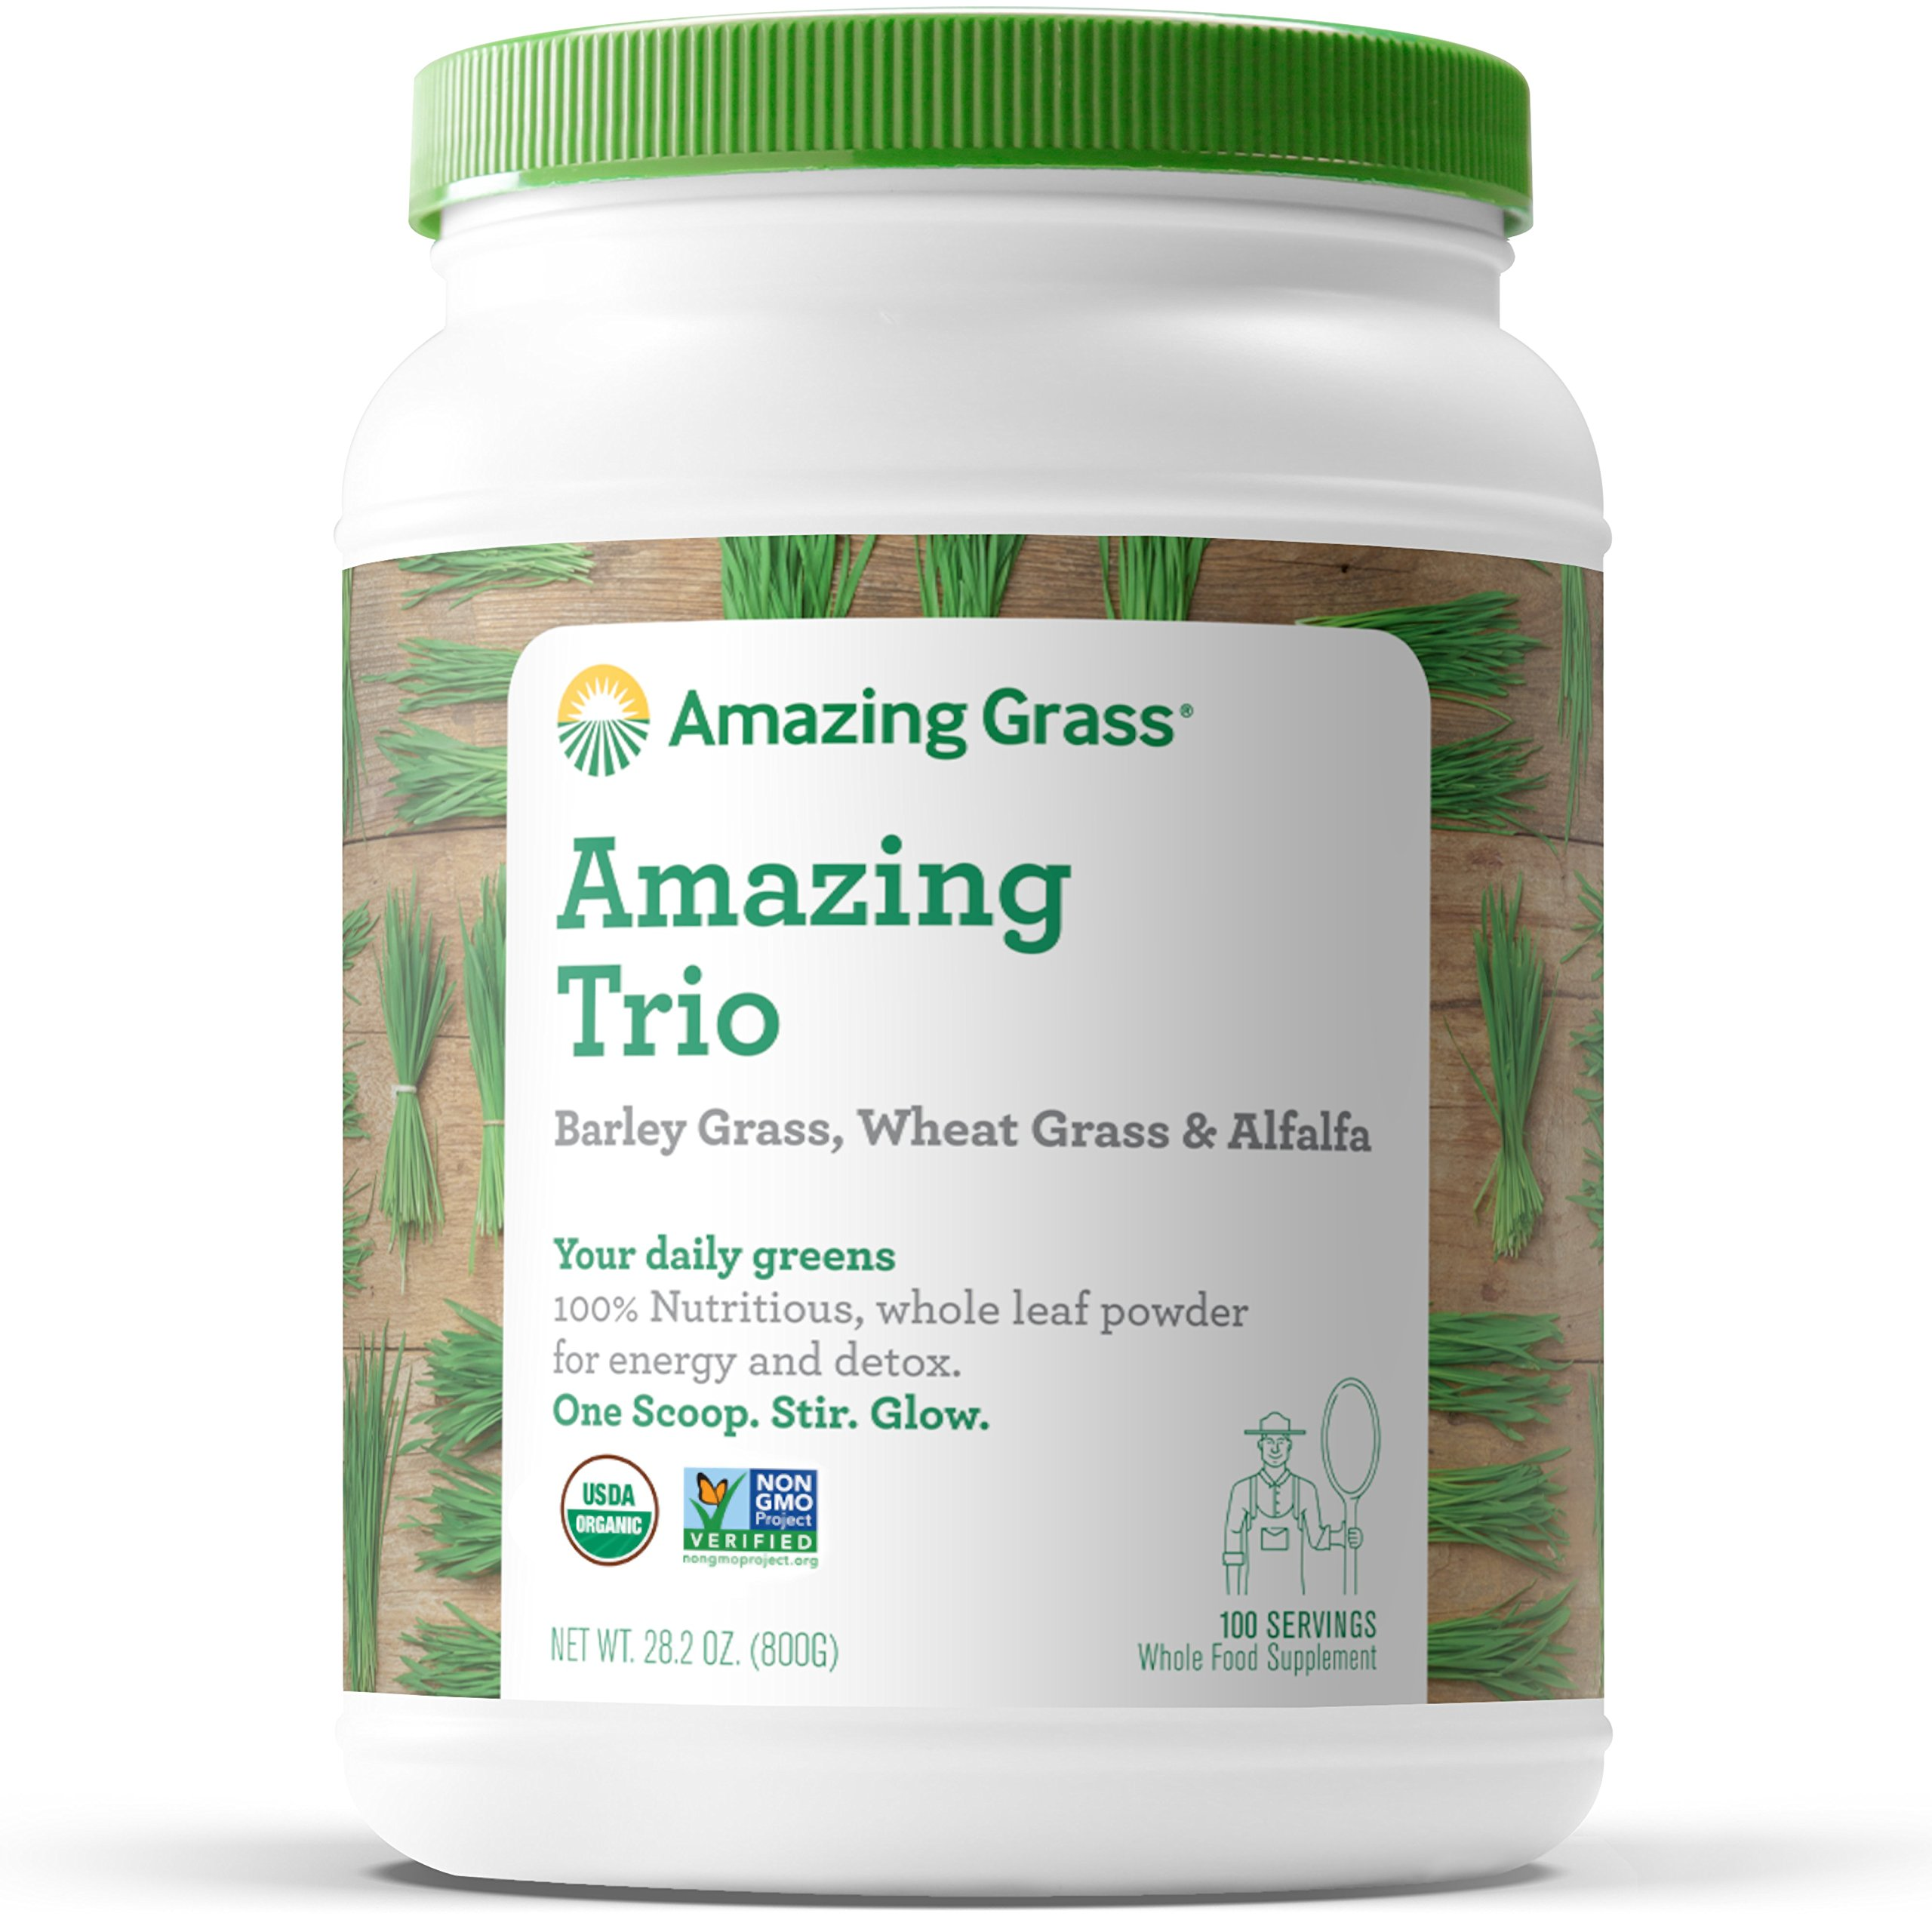 Amazing Grass Organic Amazing Trio Greens Powder with Wheat Grass, Barley Grass and Alfalfa, 100 Servings